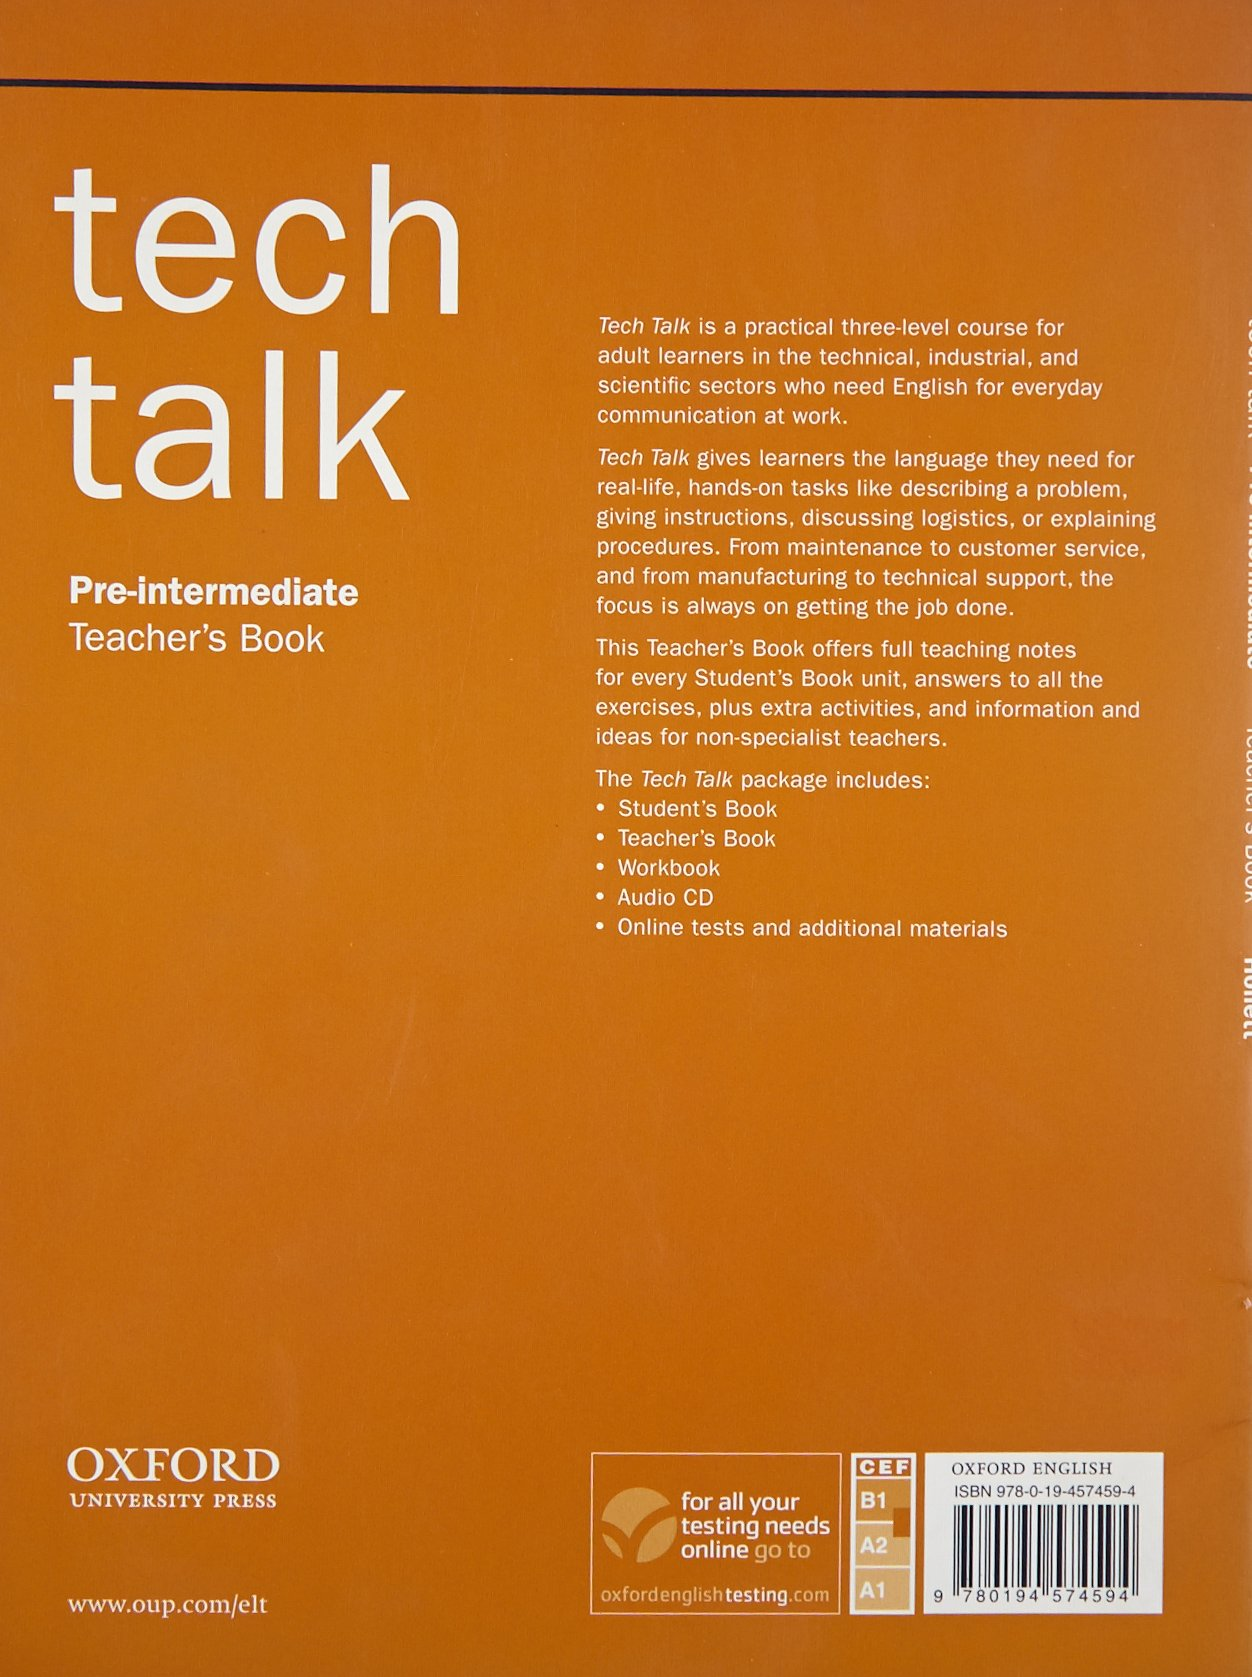 Tech Talk Pre-intermediate Teachers Book